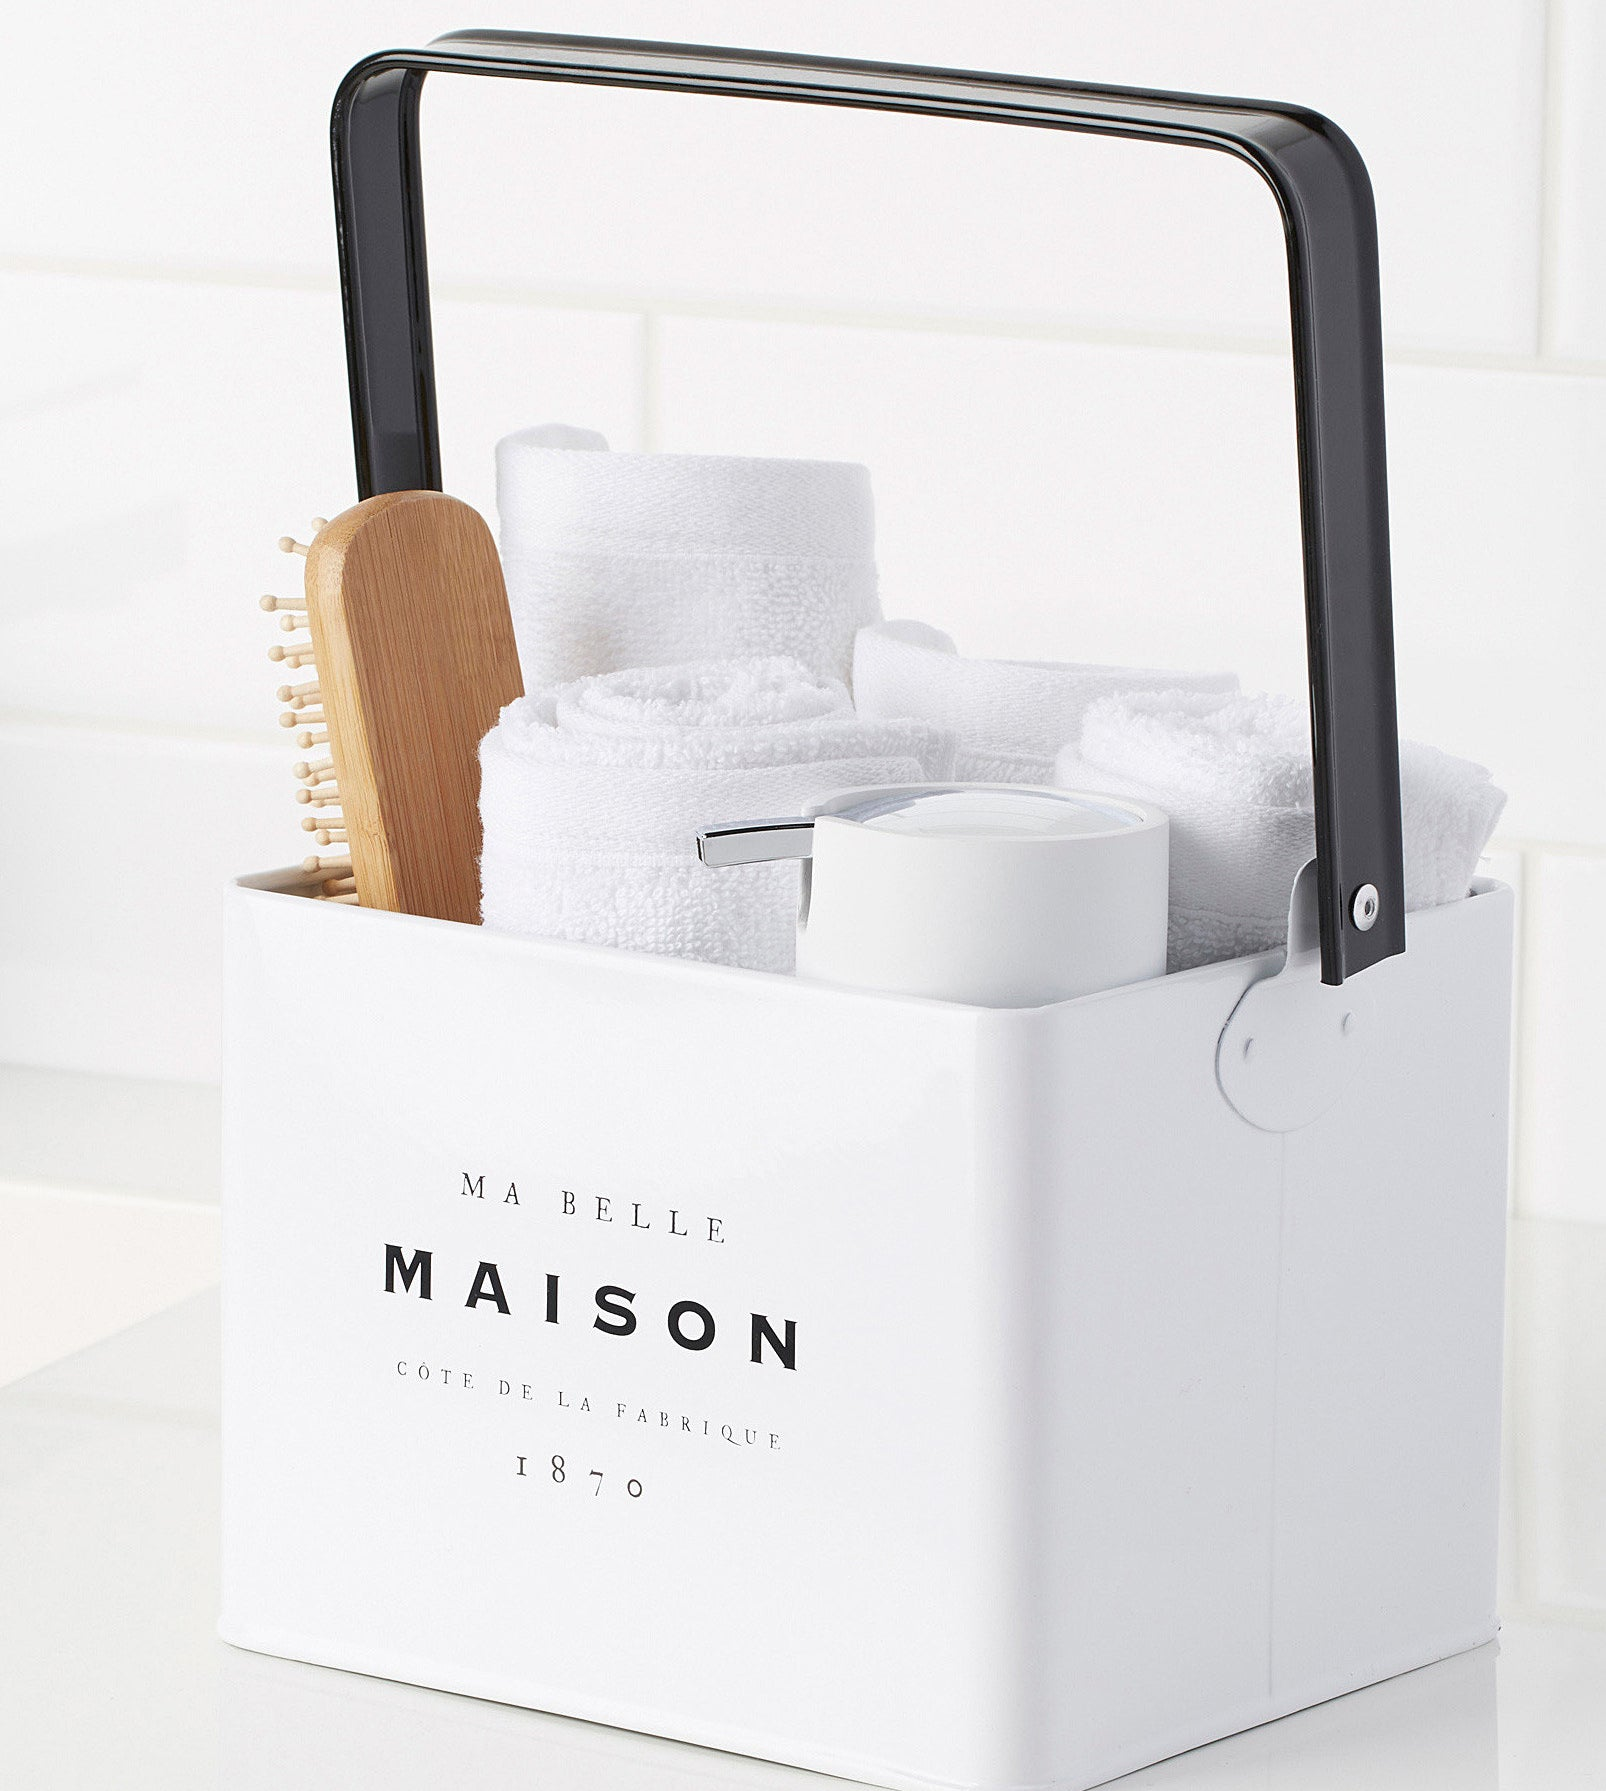 A metal basket filled with bathroom items like towels a soap dispenser and a hairbrush